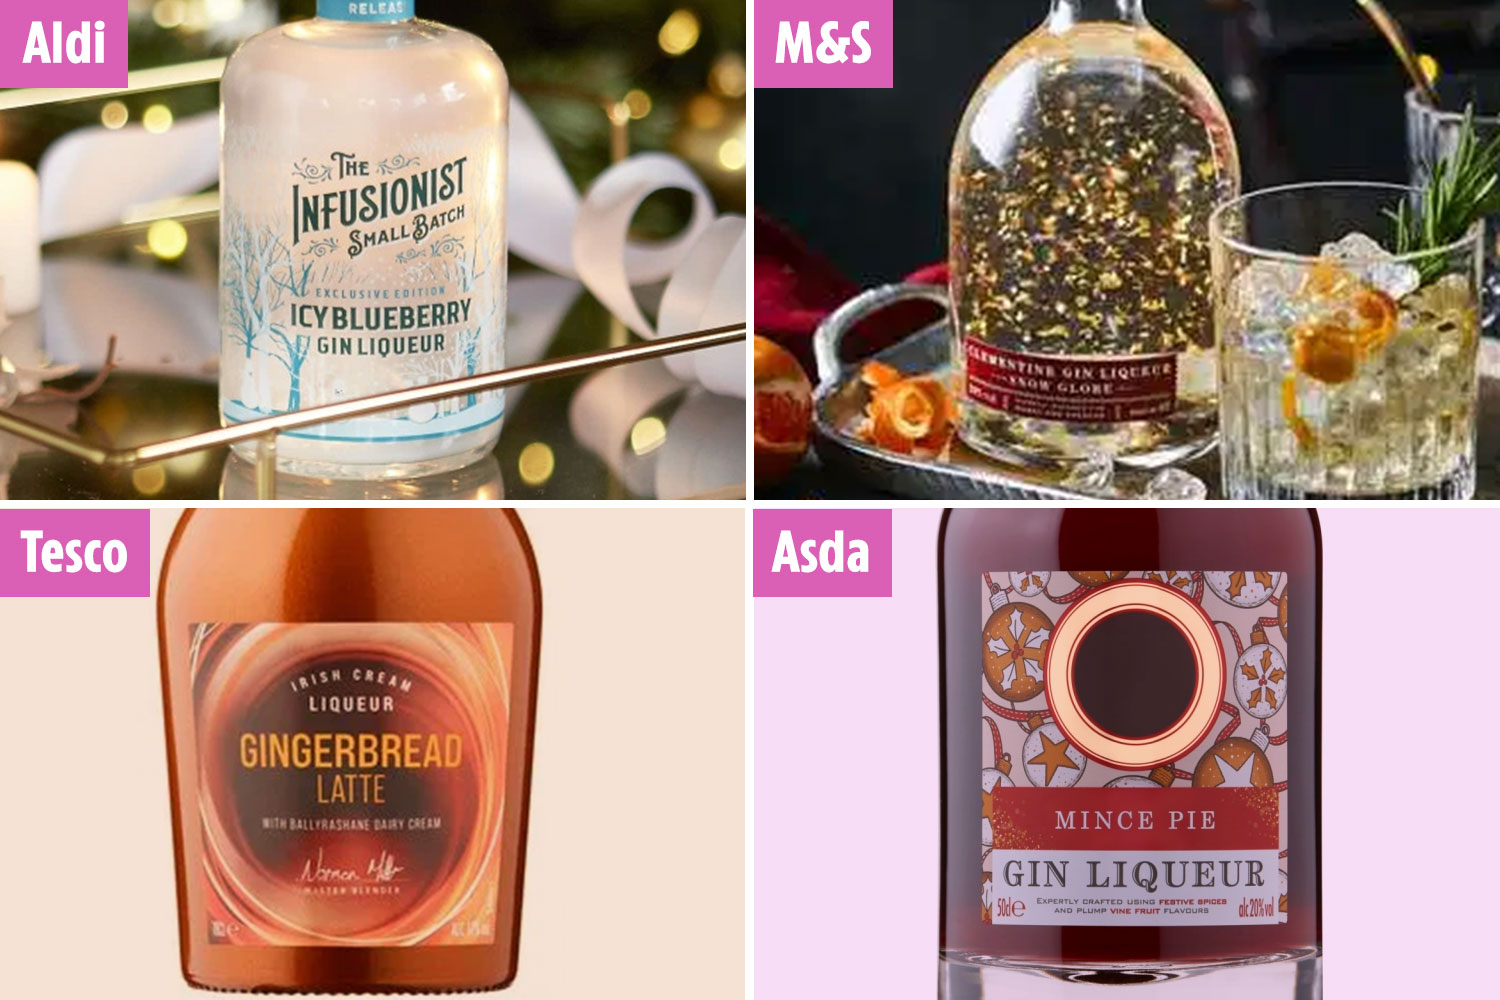 Christmas flavoured drinks are on sale to stock your home bar with this festive season